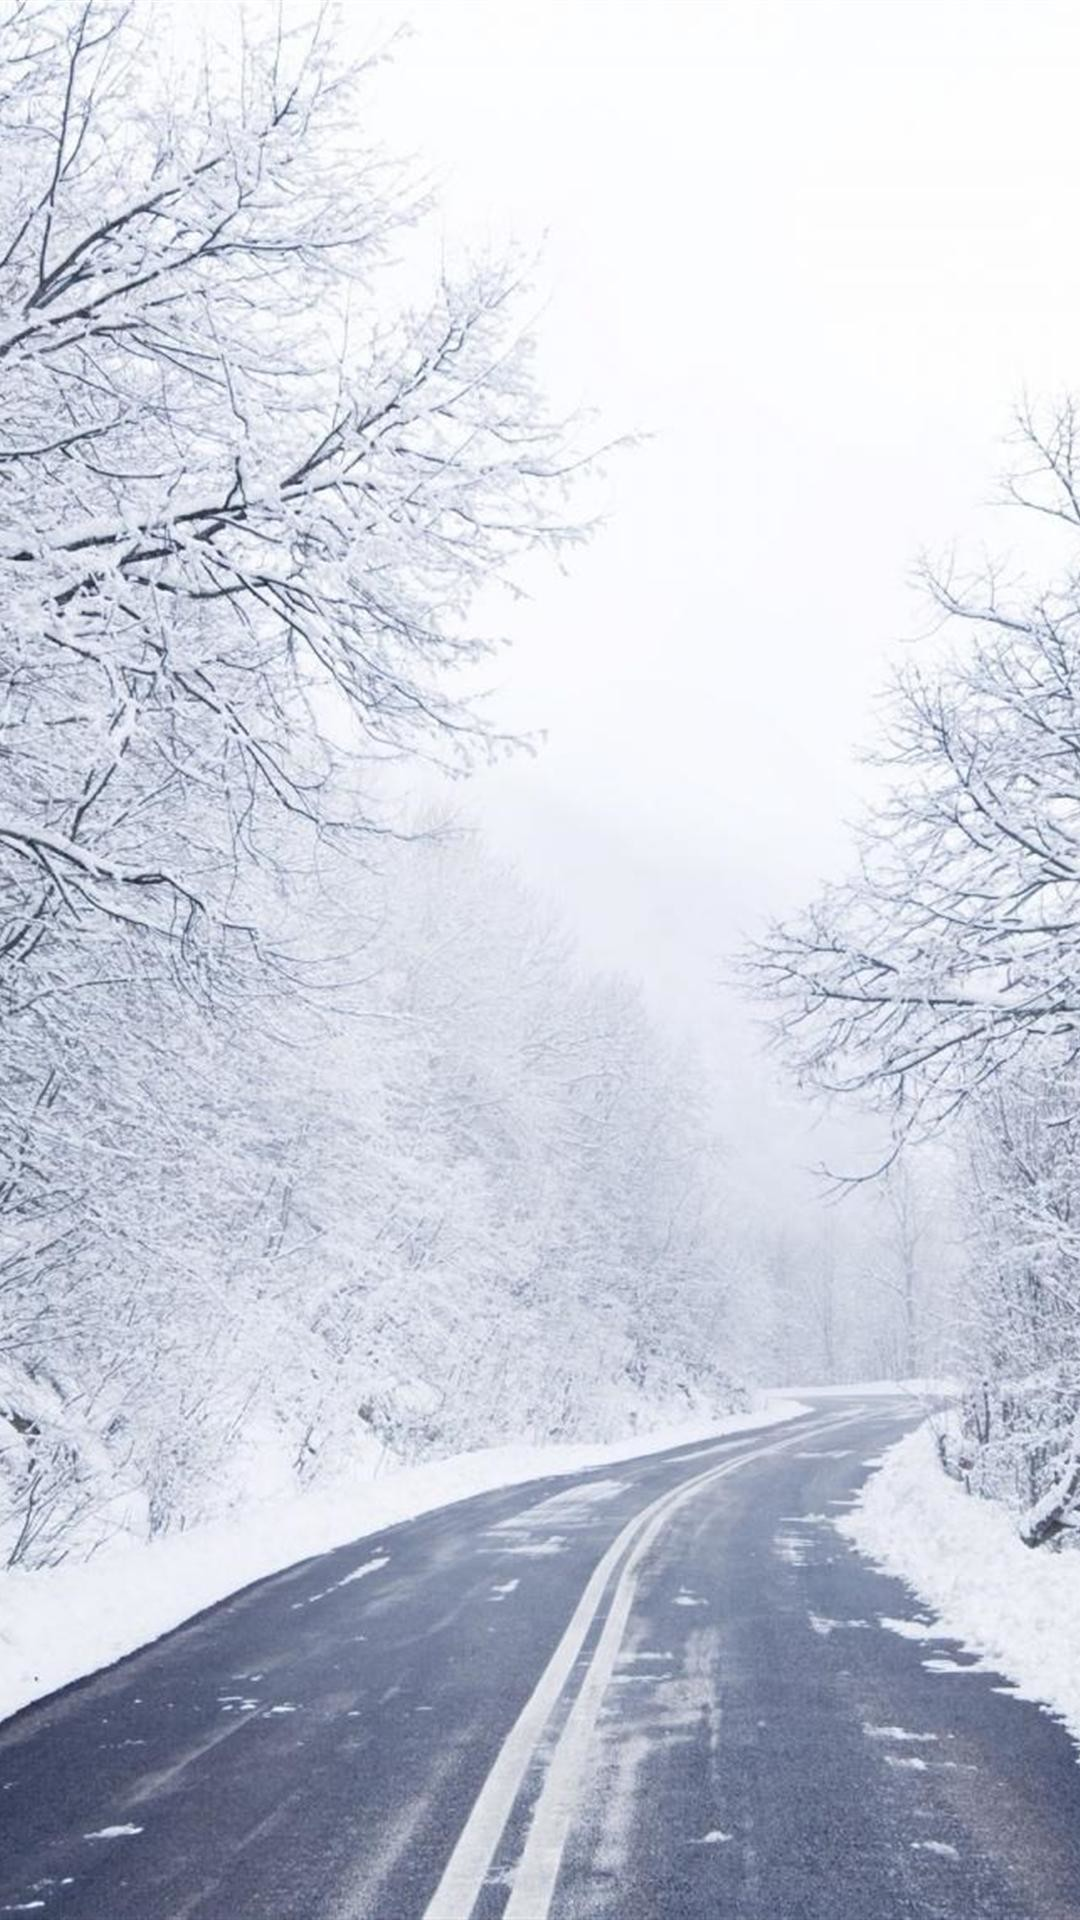 download cold winter road wallpapers for iphone 6 plus :